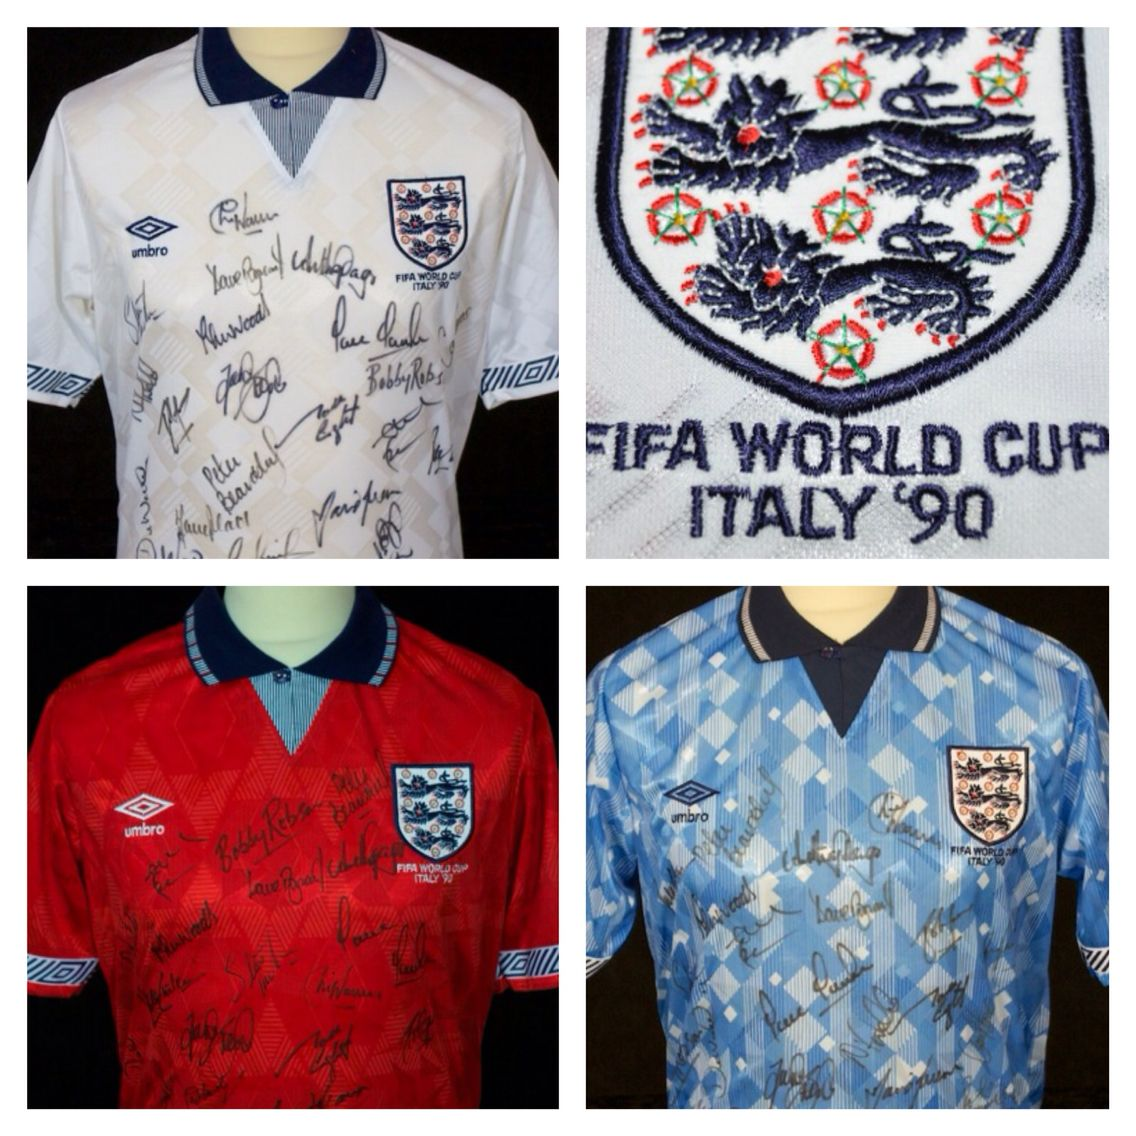 Tony Dorigo S England Shirts From 1990 World Cup Finals In Italy All Squad Signed England Shirt Football Shirts Football Uniforms